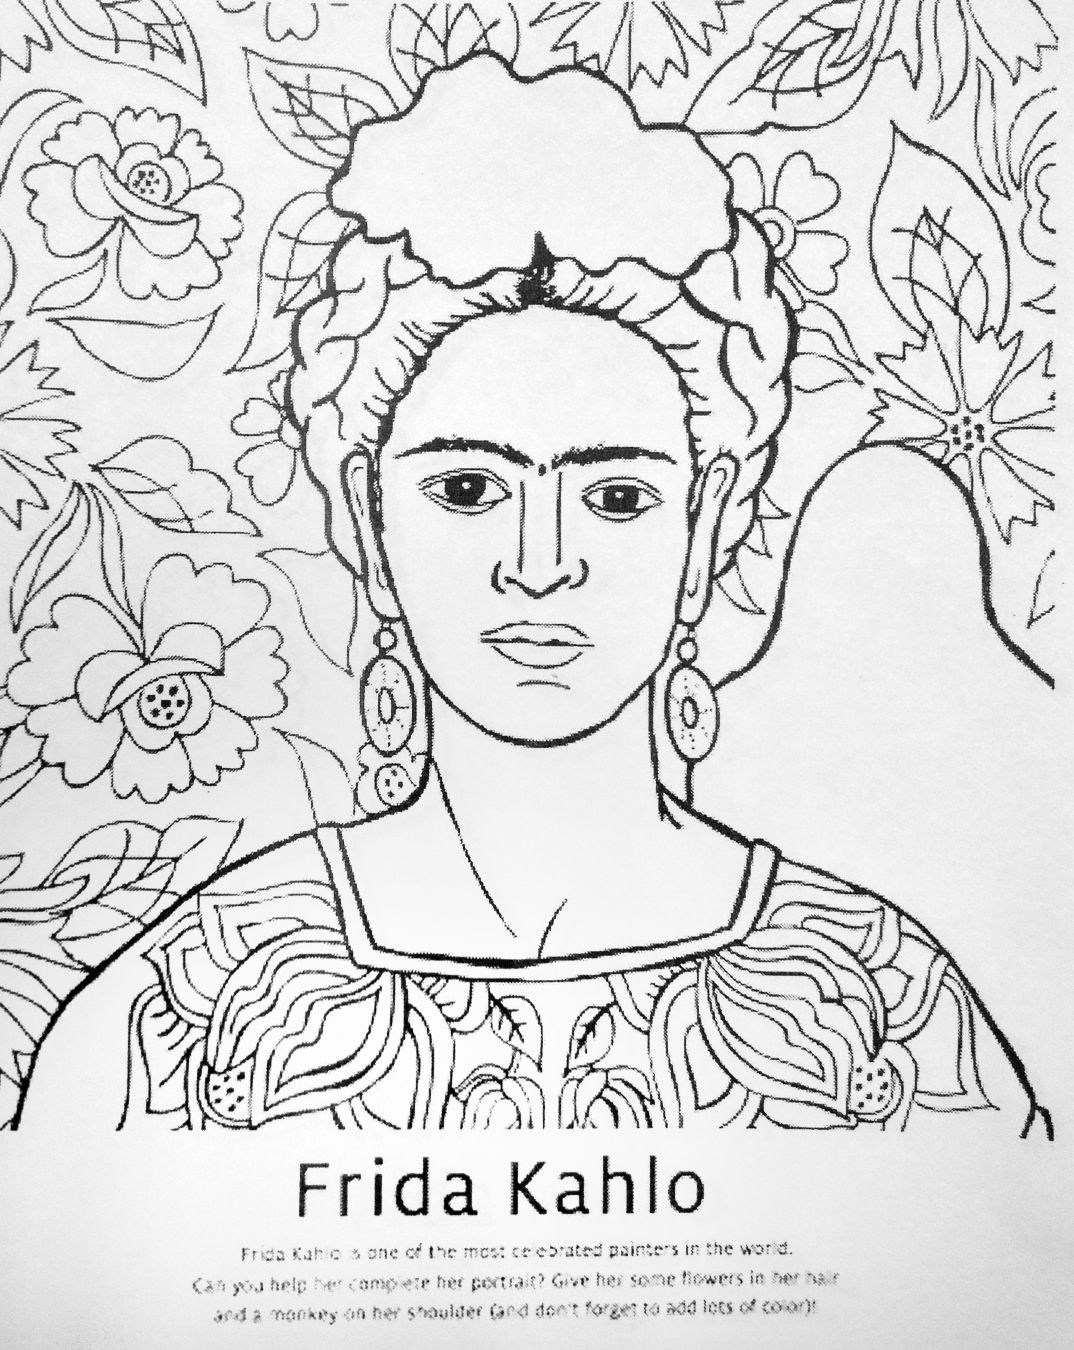 Worksheets Frida Kahlo Worksheets frida kahlo coloring apartment decor pinterest studio coloring